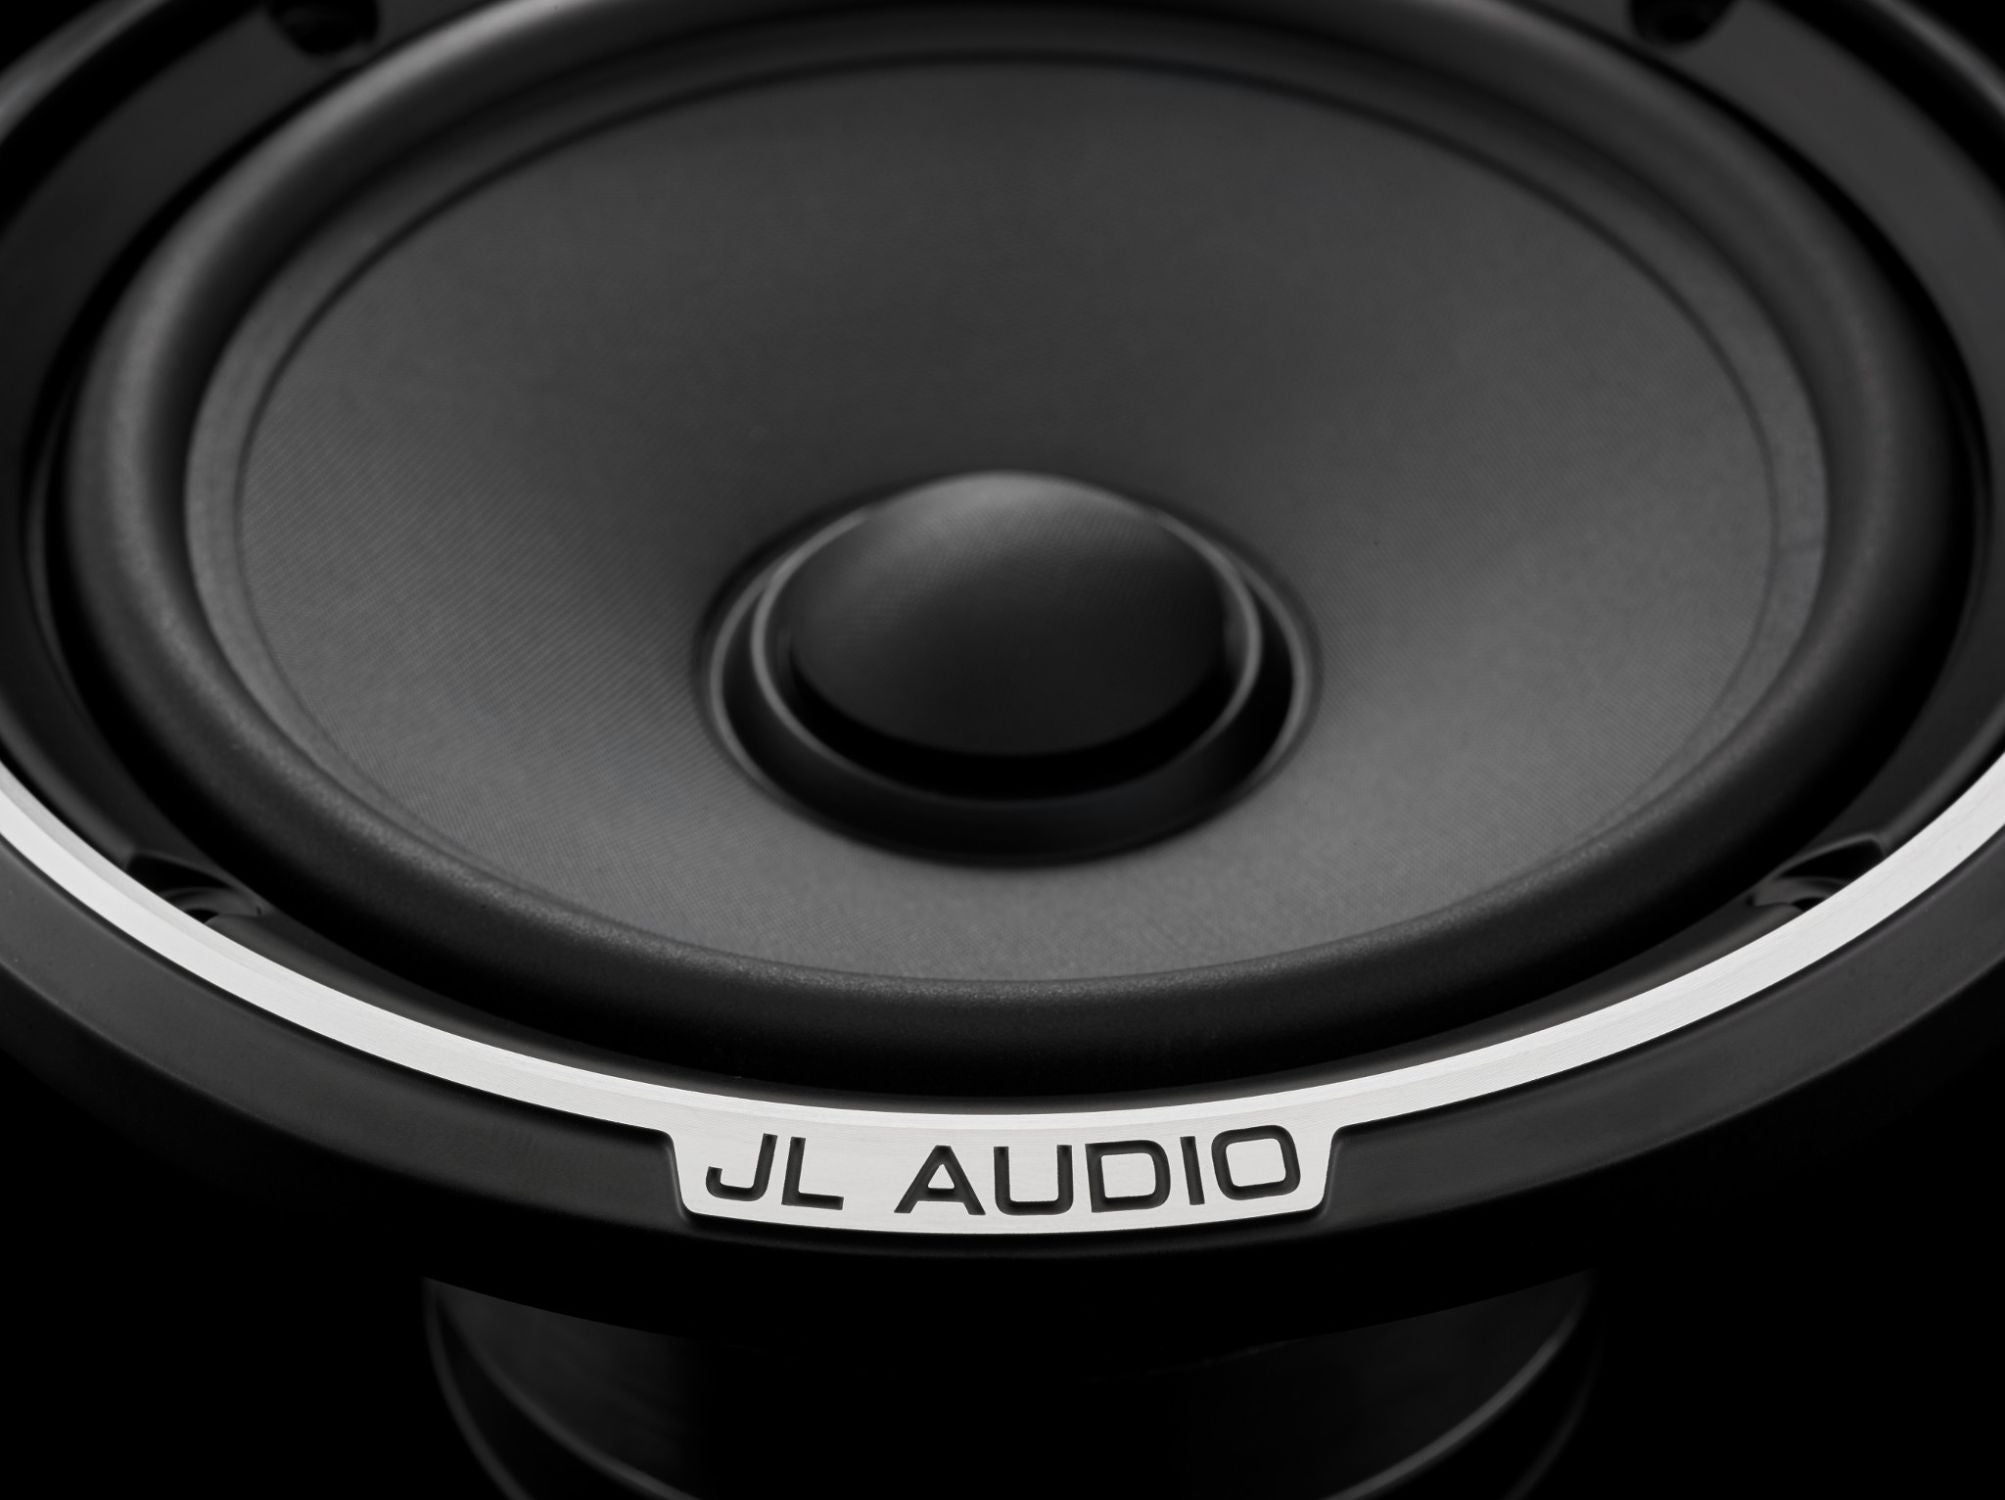 Detail of C7-650cw Component Woofer